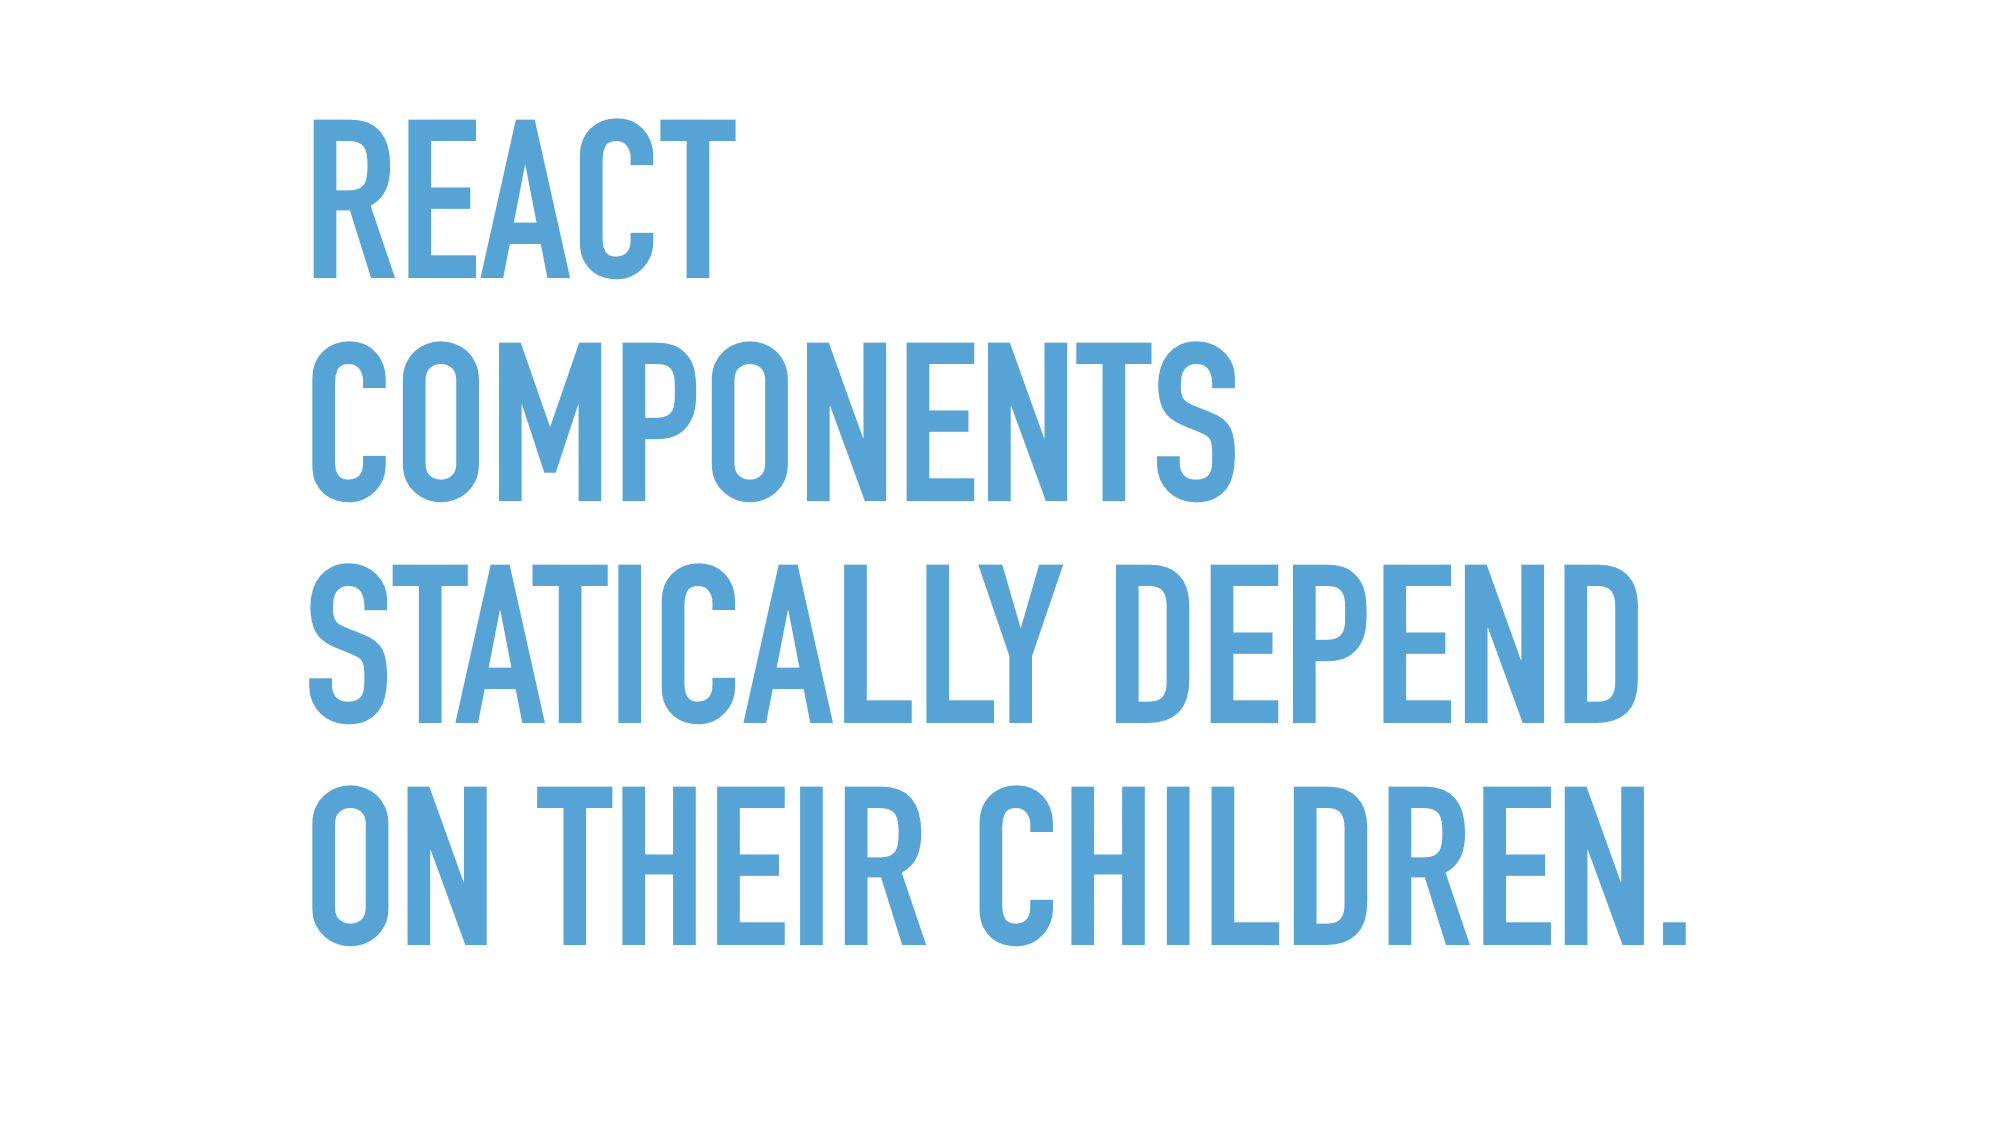 Slide text: React component statically depend on their children.